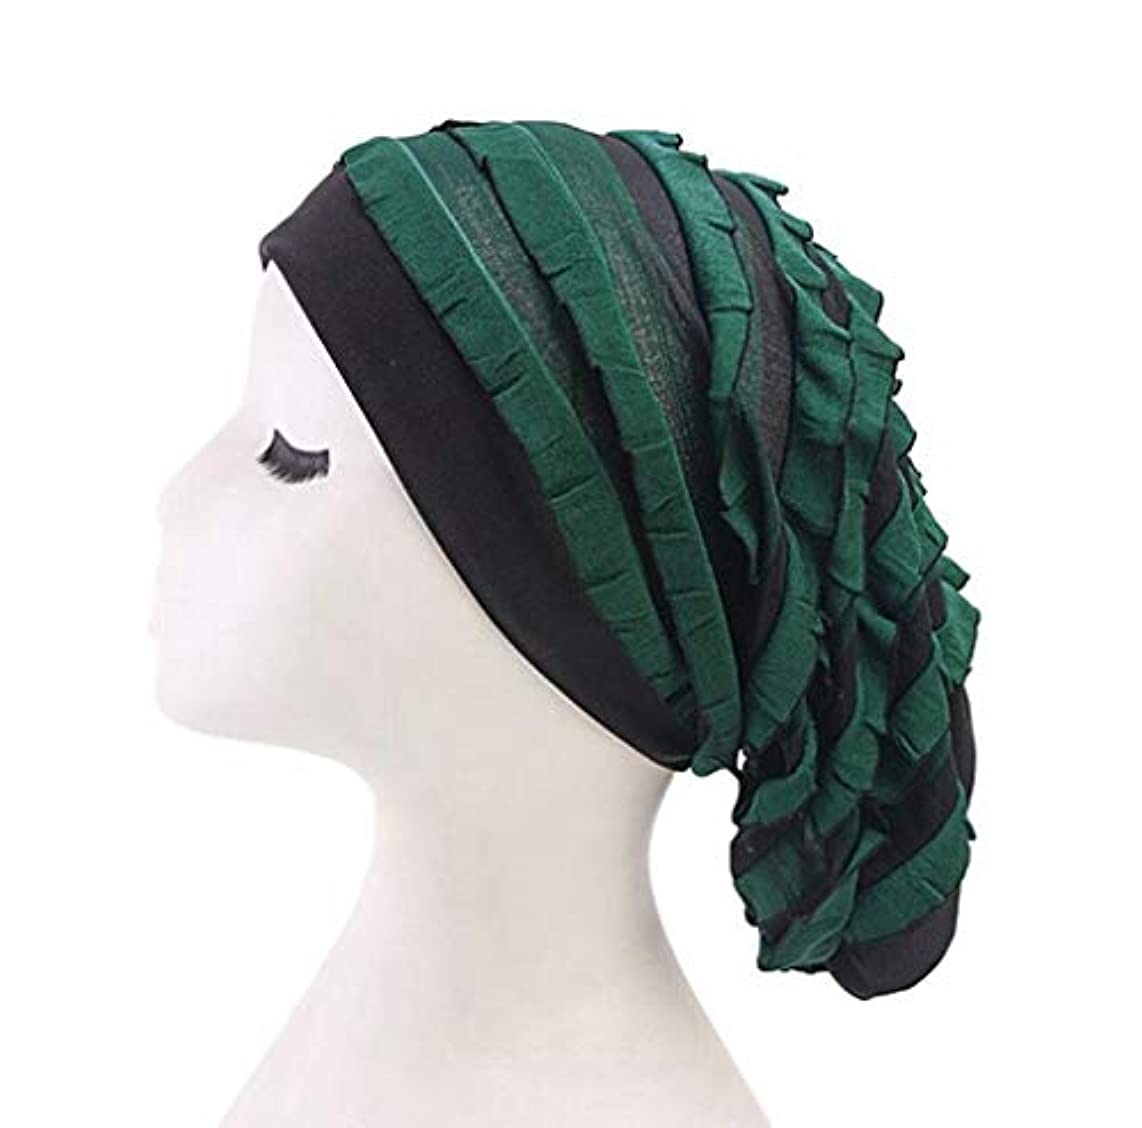 Women's Nightcap Broadband Stripe Sleep Cap Hat for Curly Natural Hair Curly Hair Loss